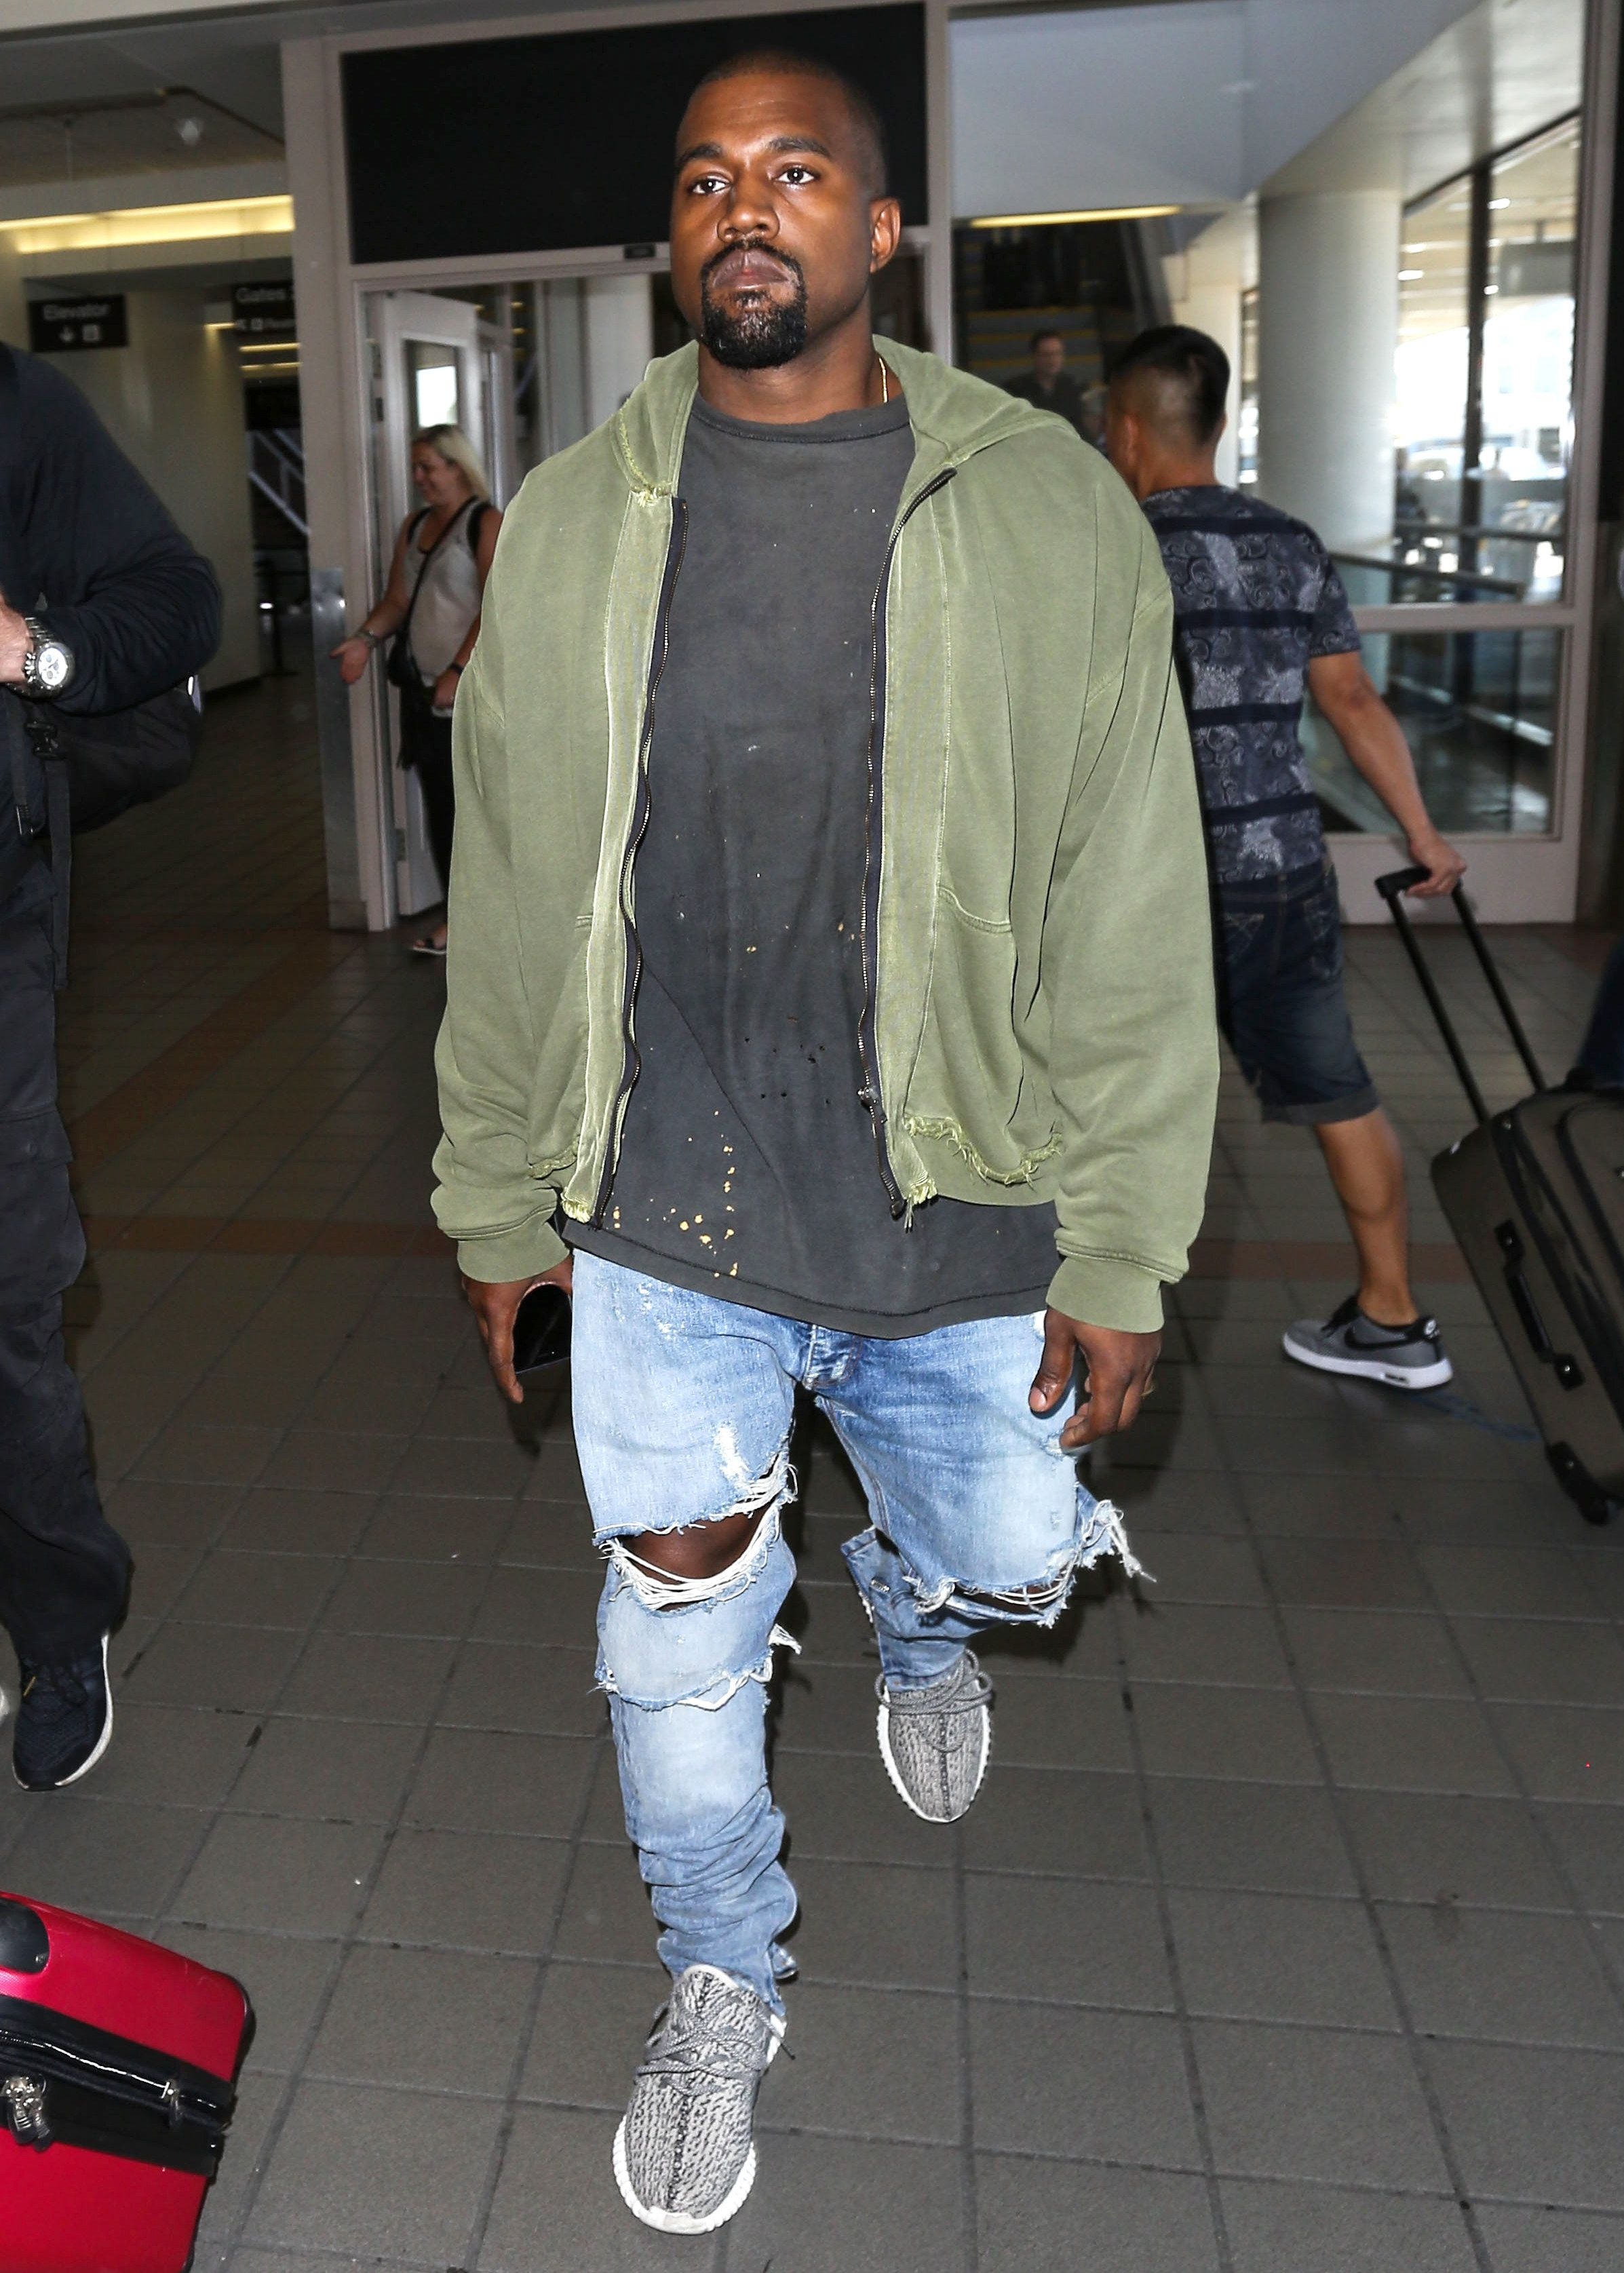 3242e4f5220 Kanye is one of my fashion icons because of his oversized and distressed  clothing line that isn t liked by all but he had the tenacity to start his  own ...